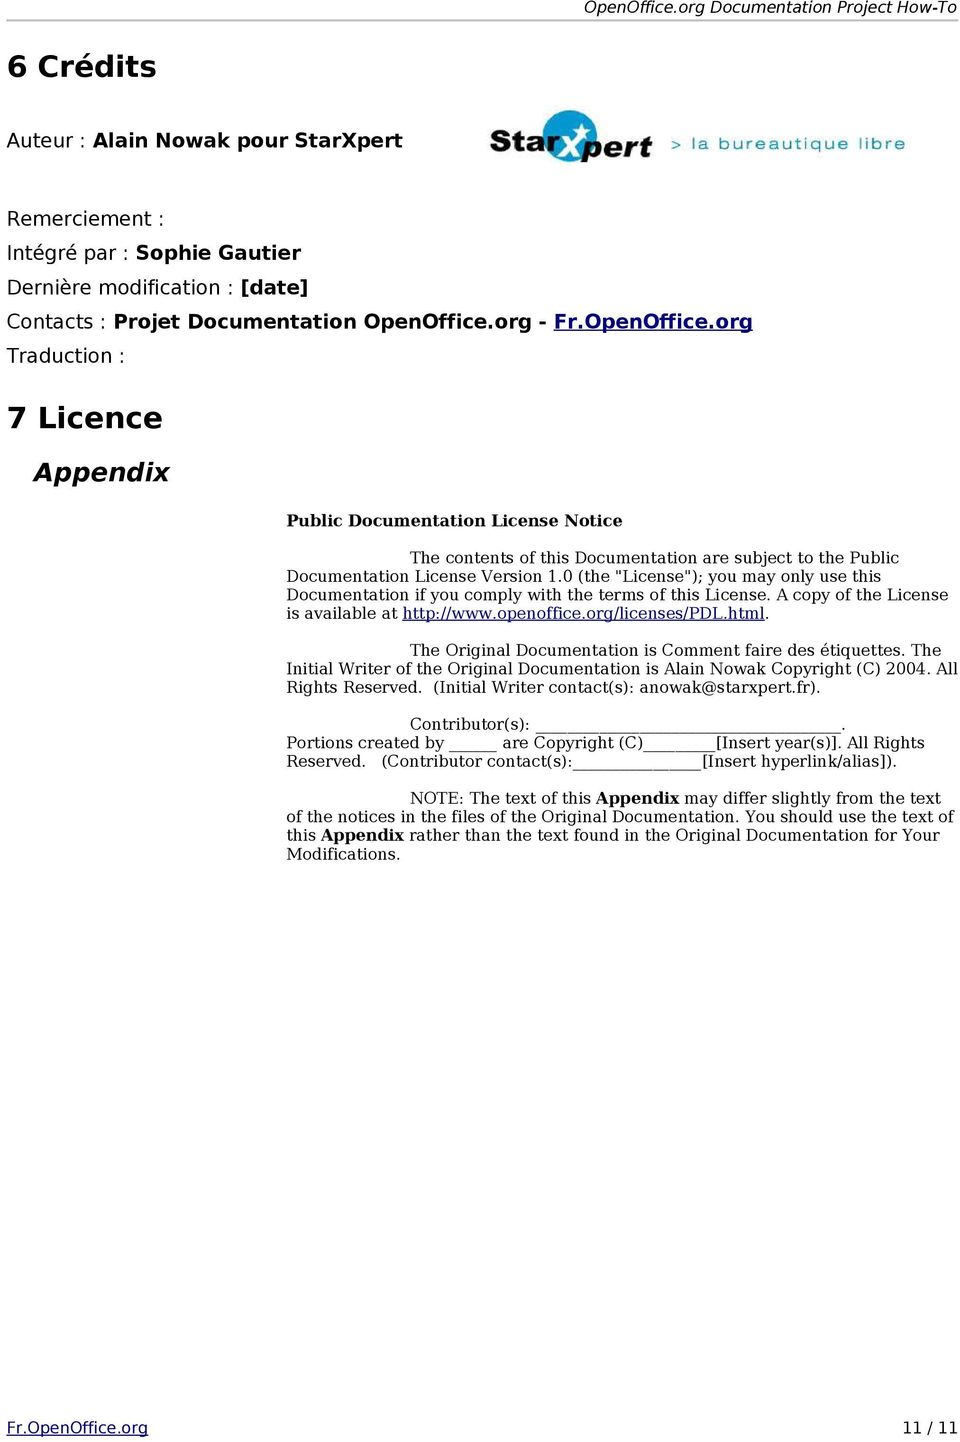 "0 (the ""License""); you may only use this Documentation if you comply with the terms of this License. A copy of the License is available at http://www.openoffice.org/licenses/pdl.html."